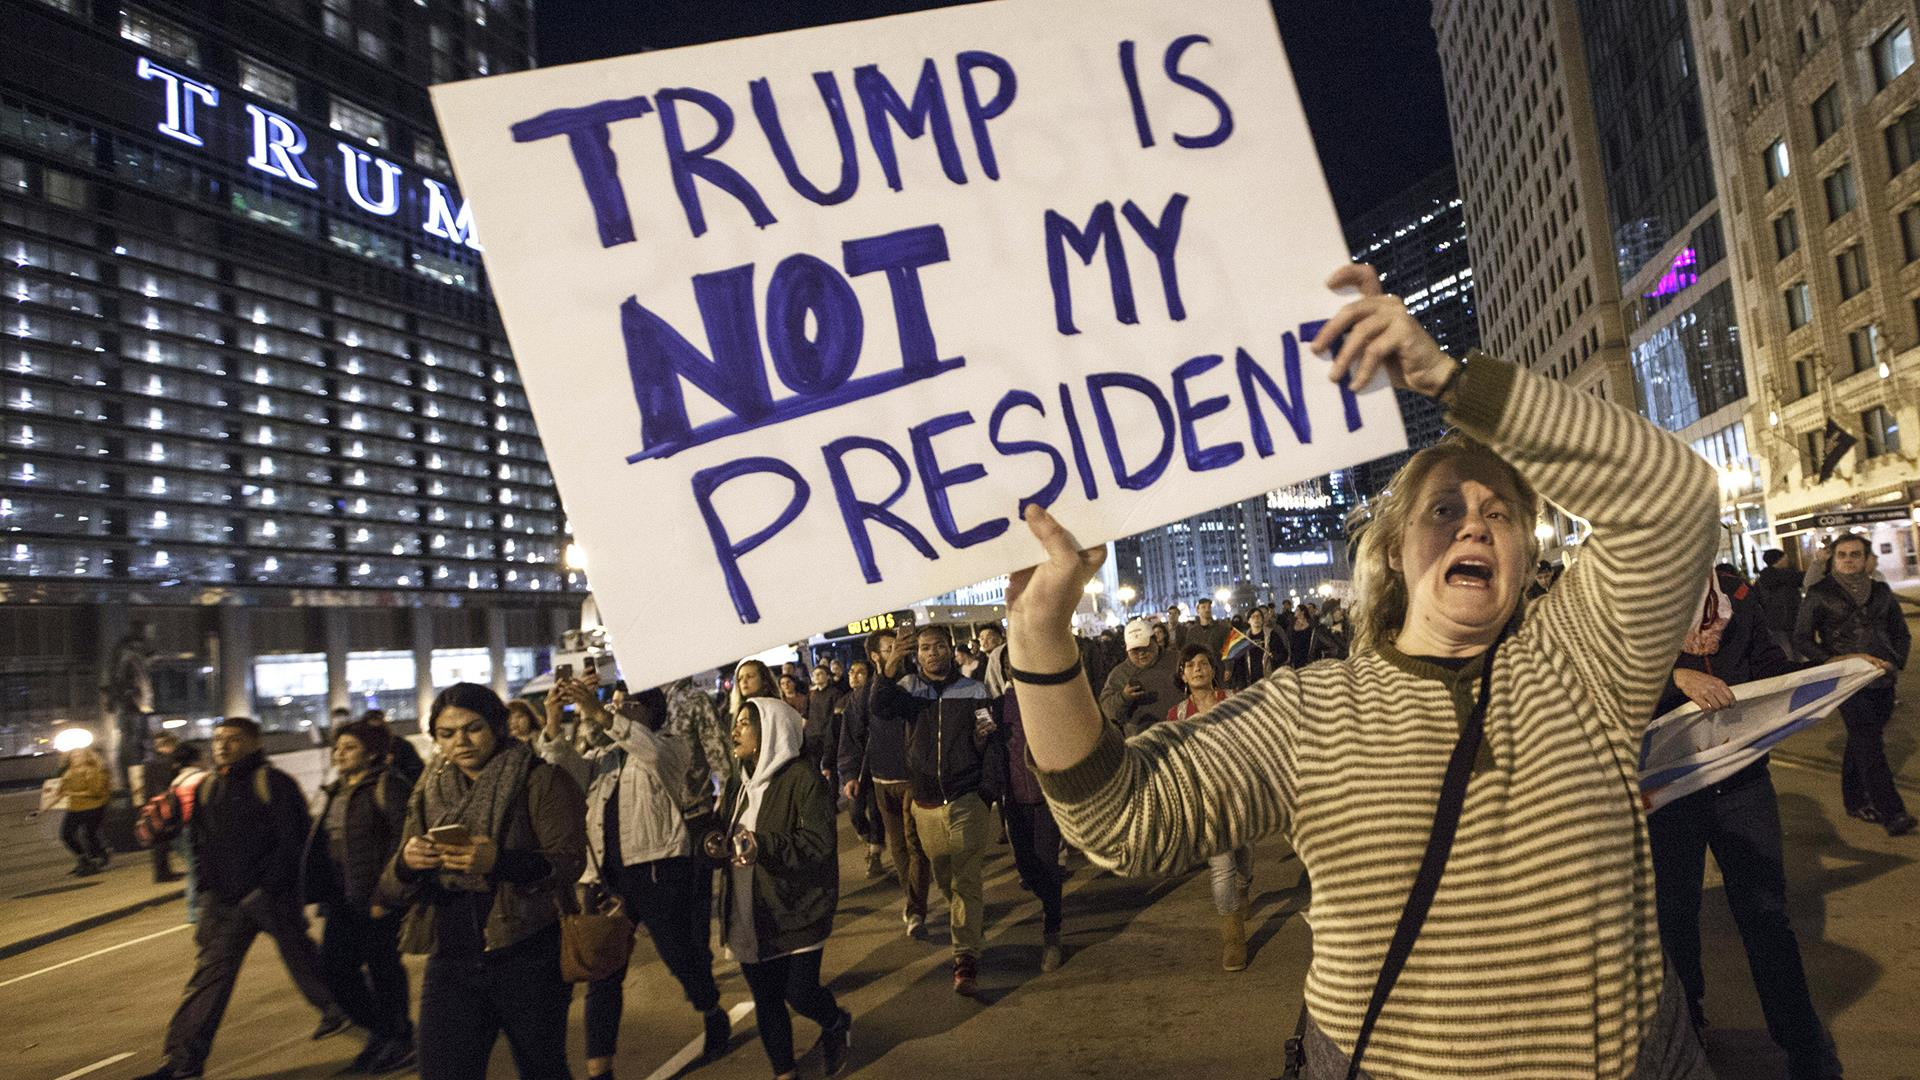 Nationwide Protests Continue as Obama and Trump Strike Conciliatory Tone